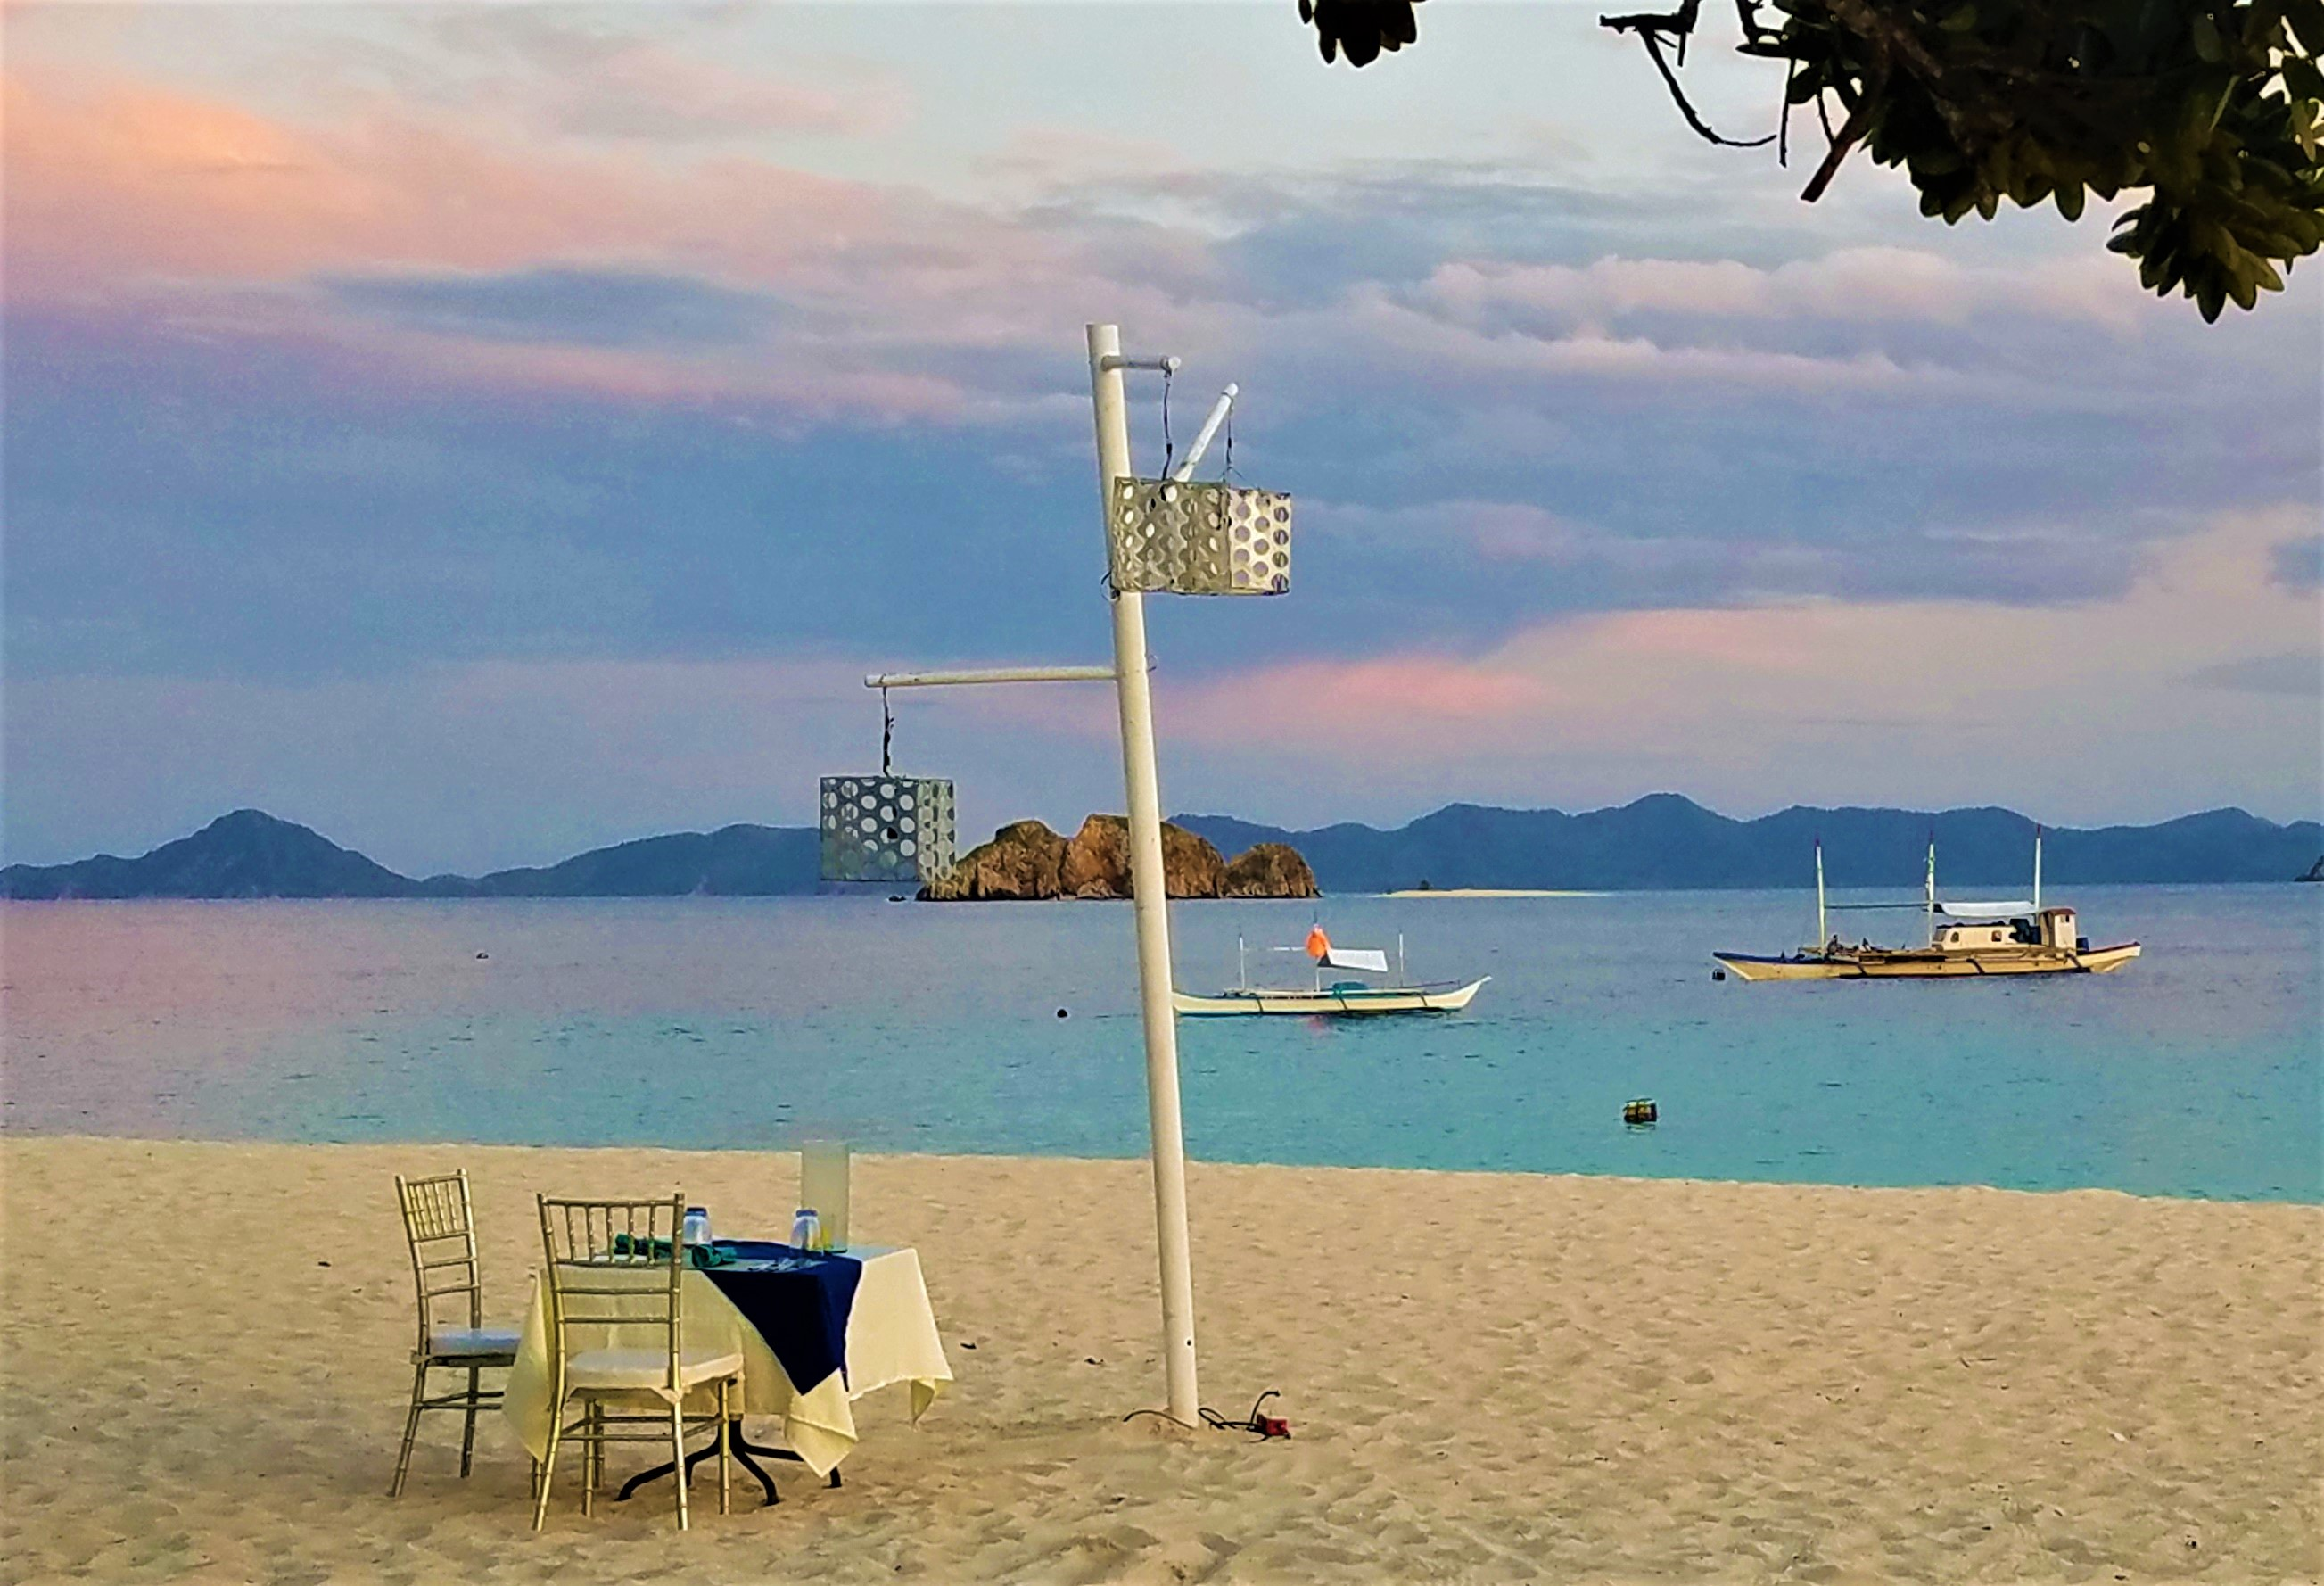 Club Paradise Resort, Coron, Palawan